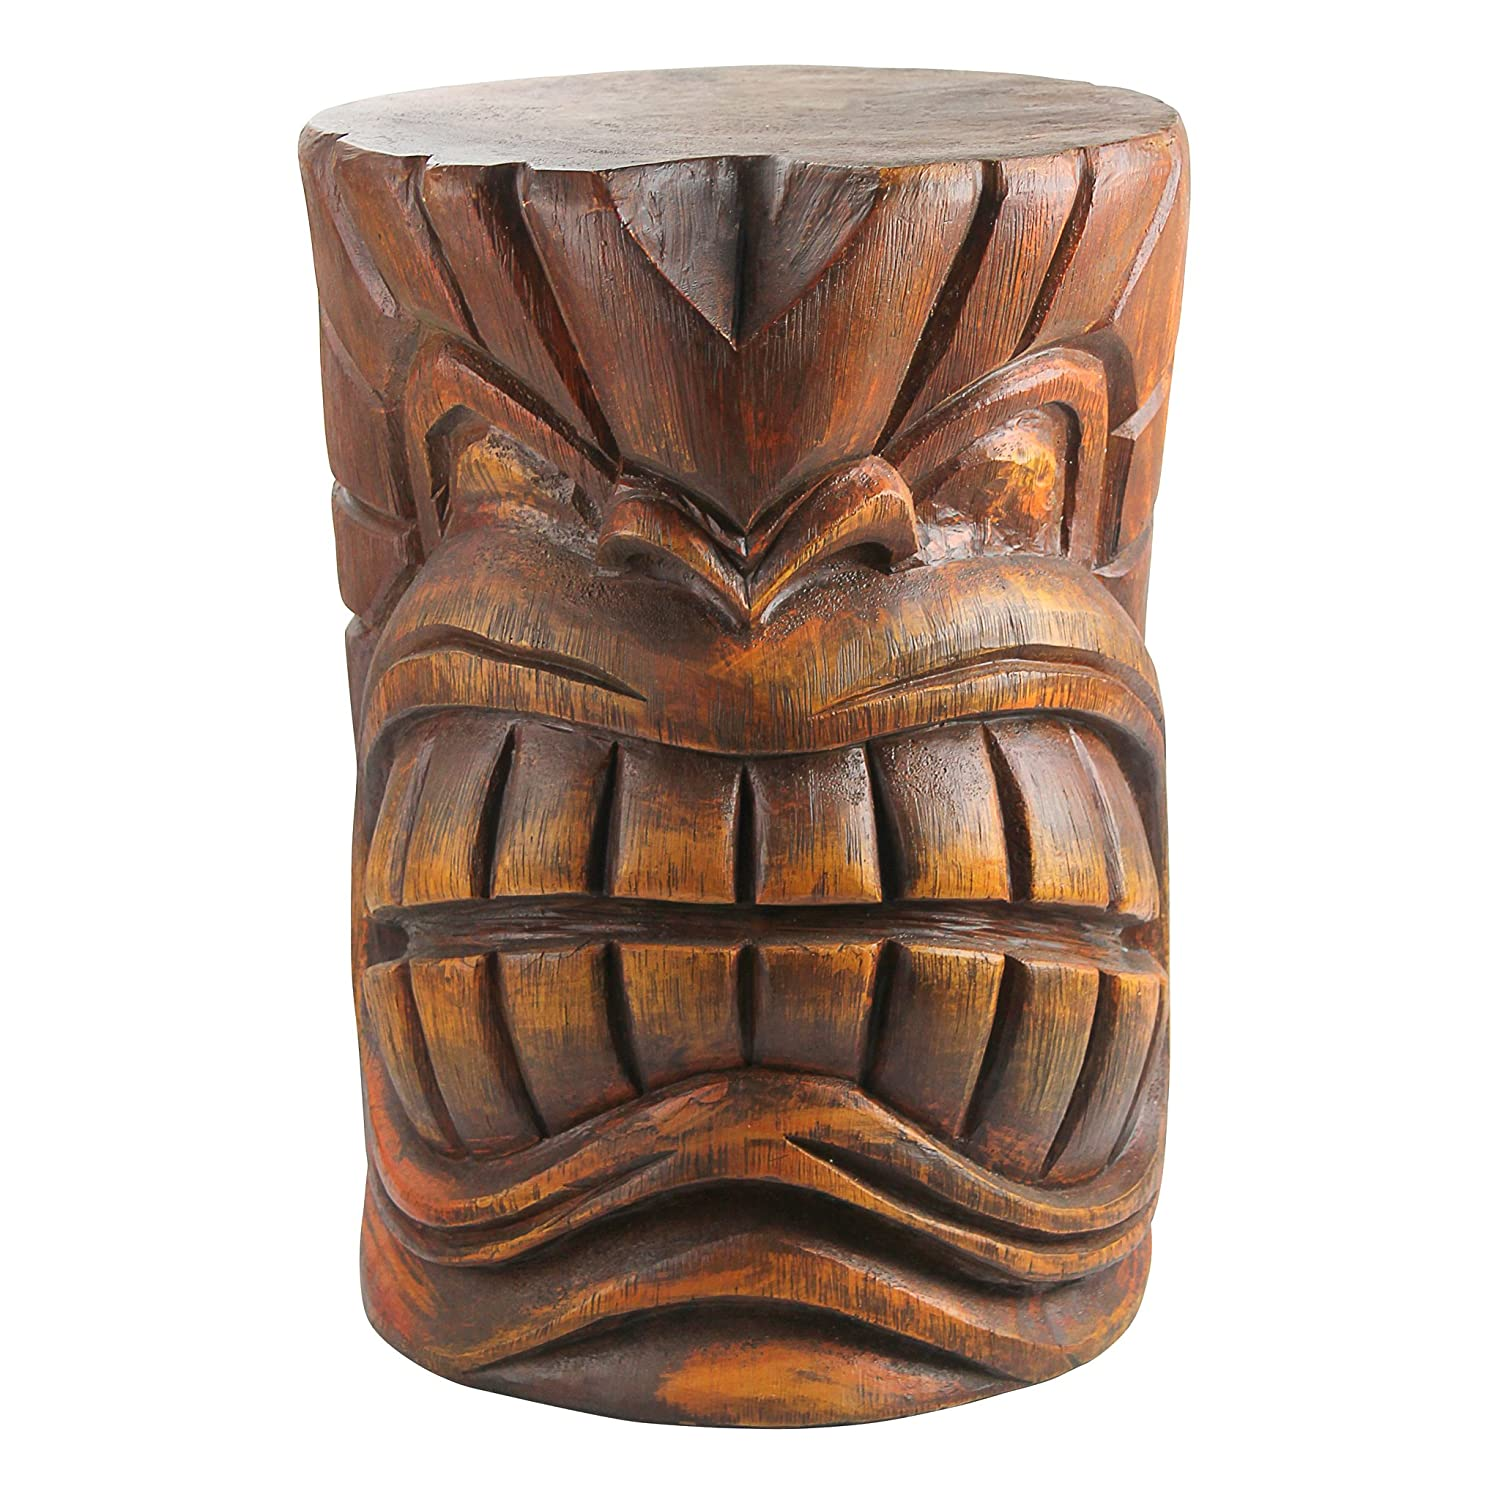 Design Toscano The Grande Tiki God Kanaloa Teeth Side Table Statue, 20 Inch, Polyresin, Woodtone